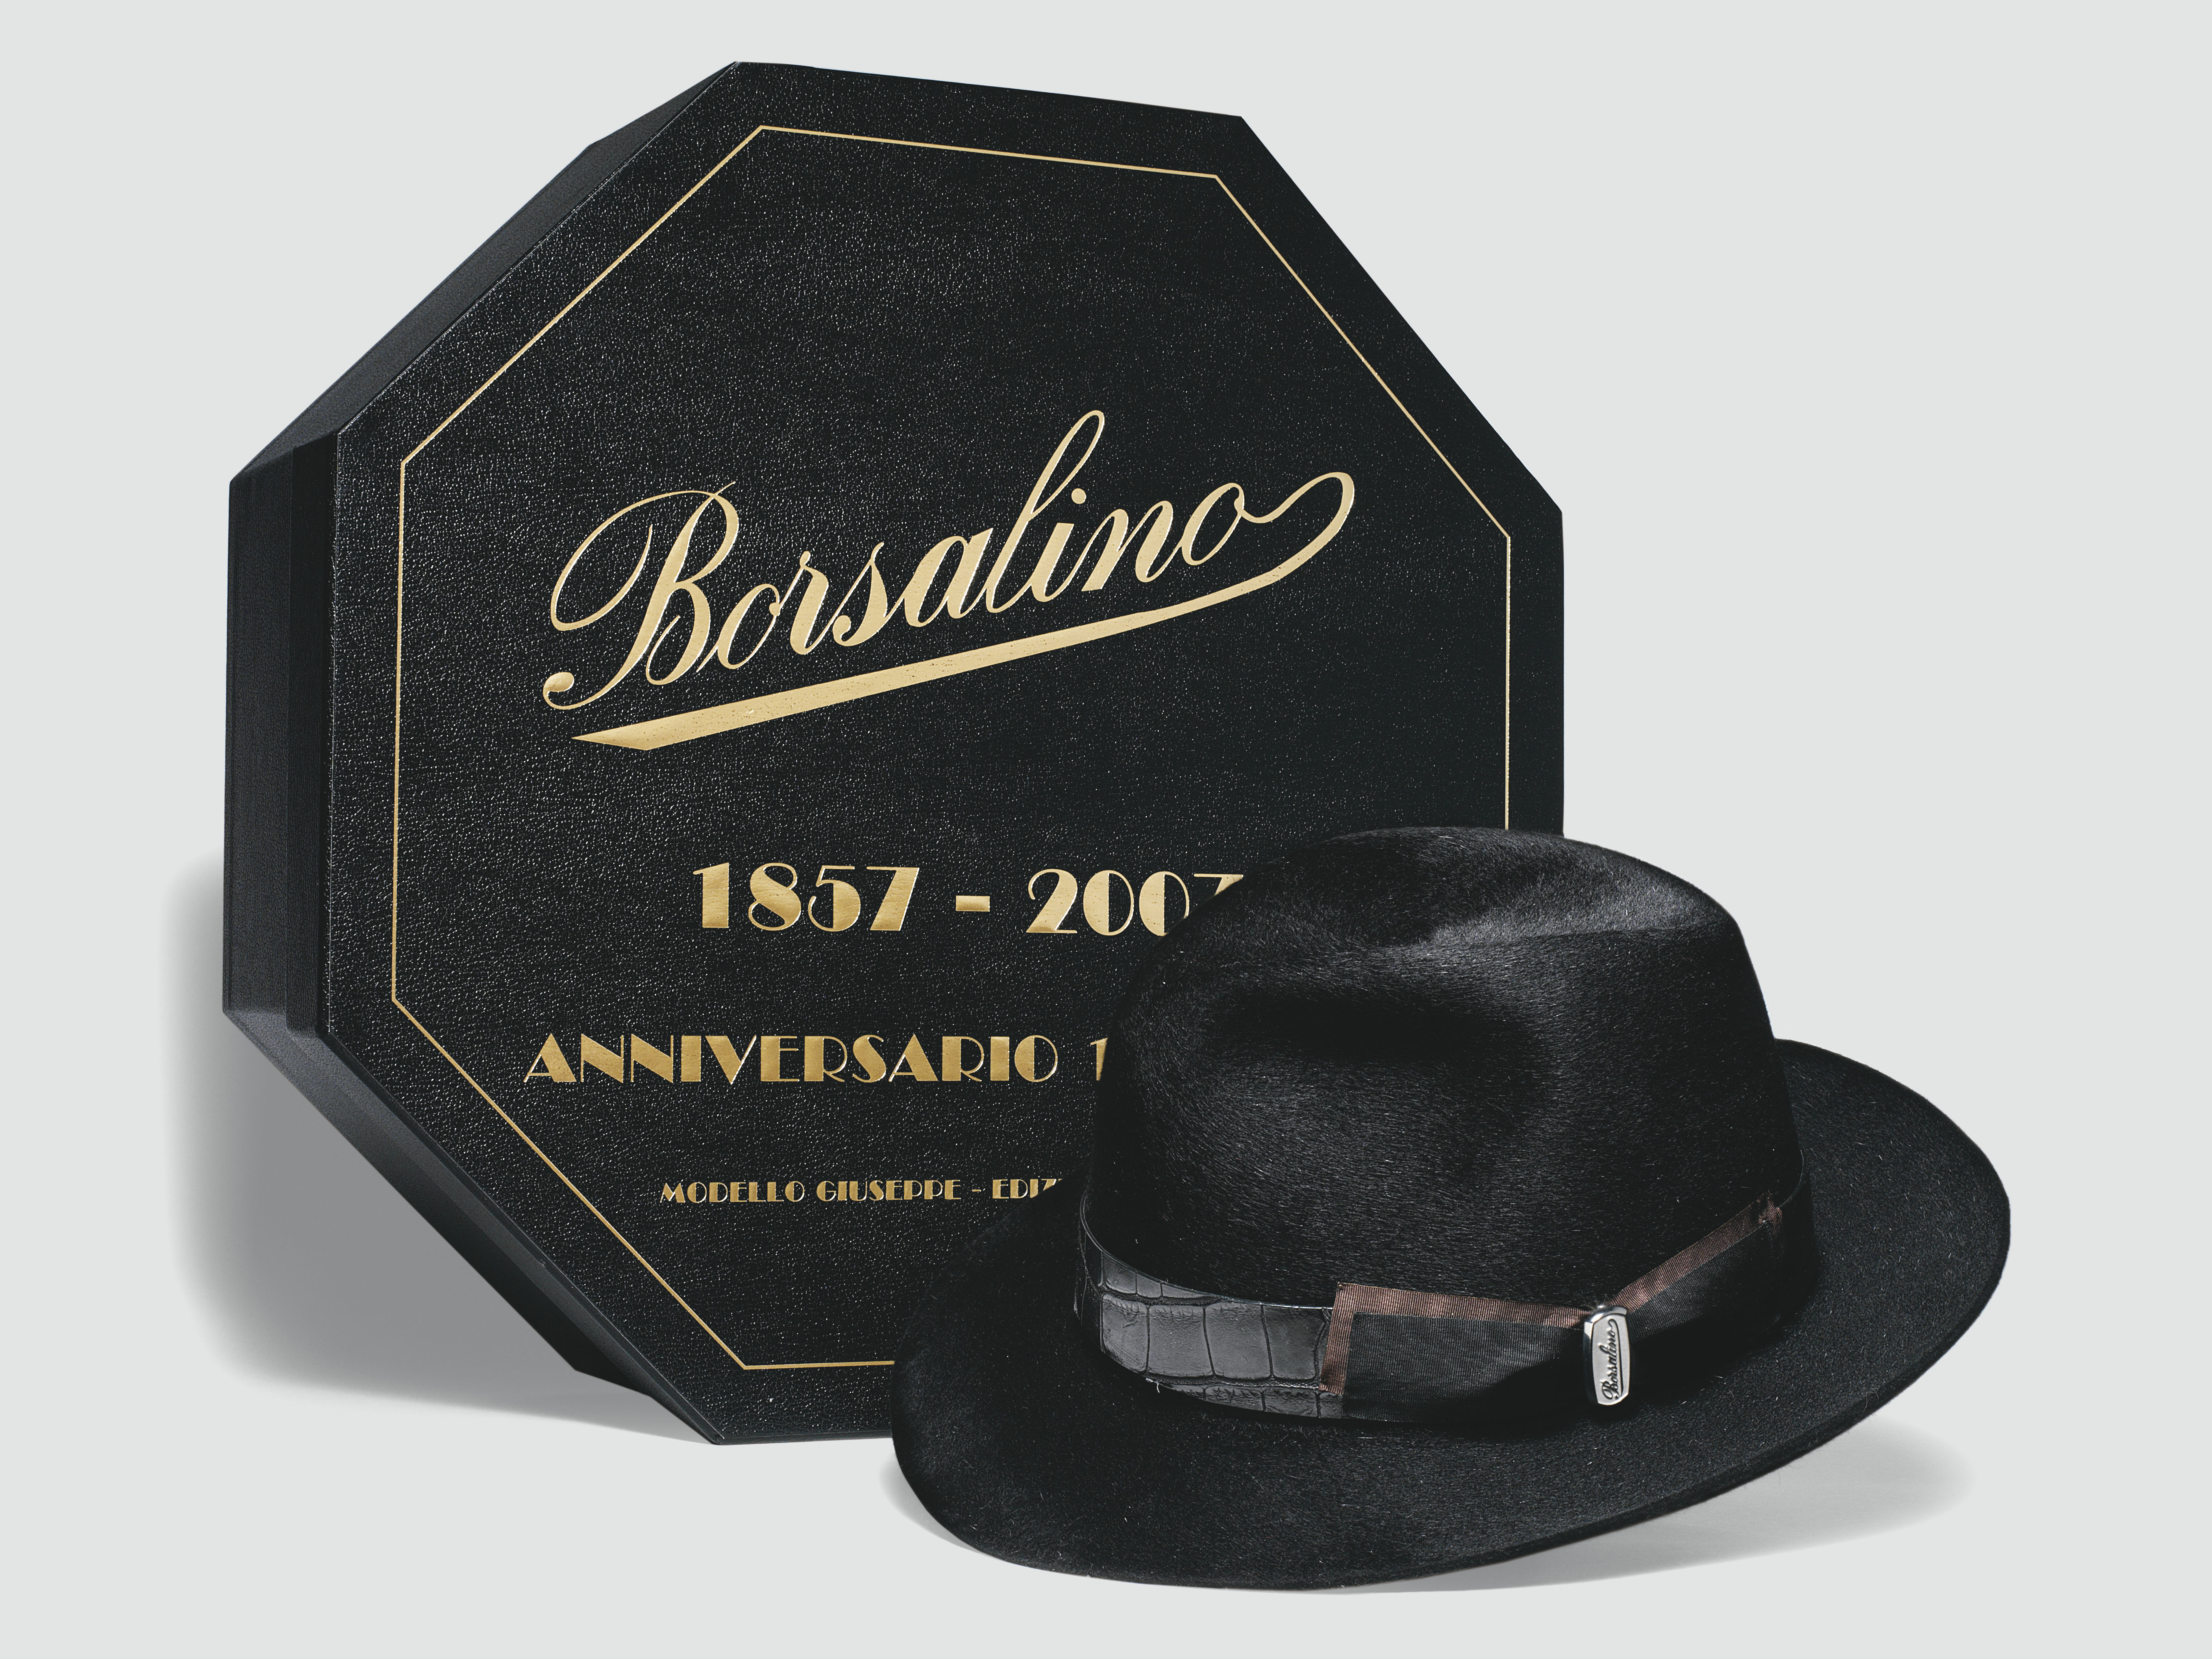 Borsalino: the history of a hat